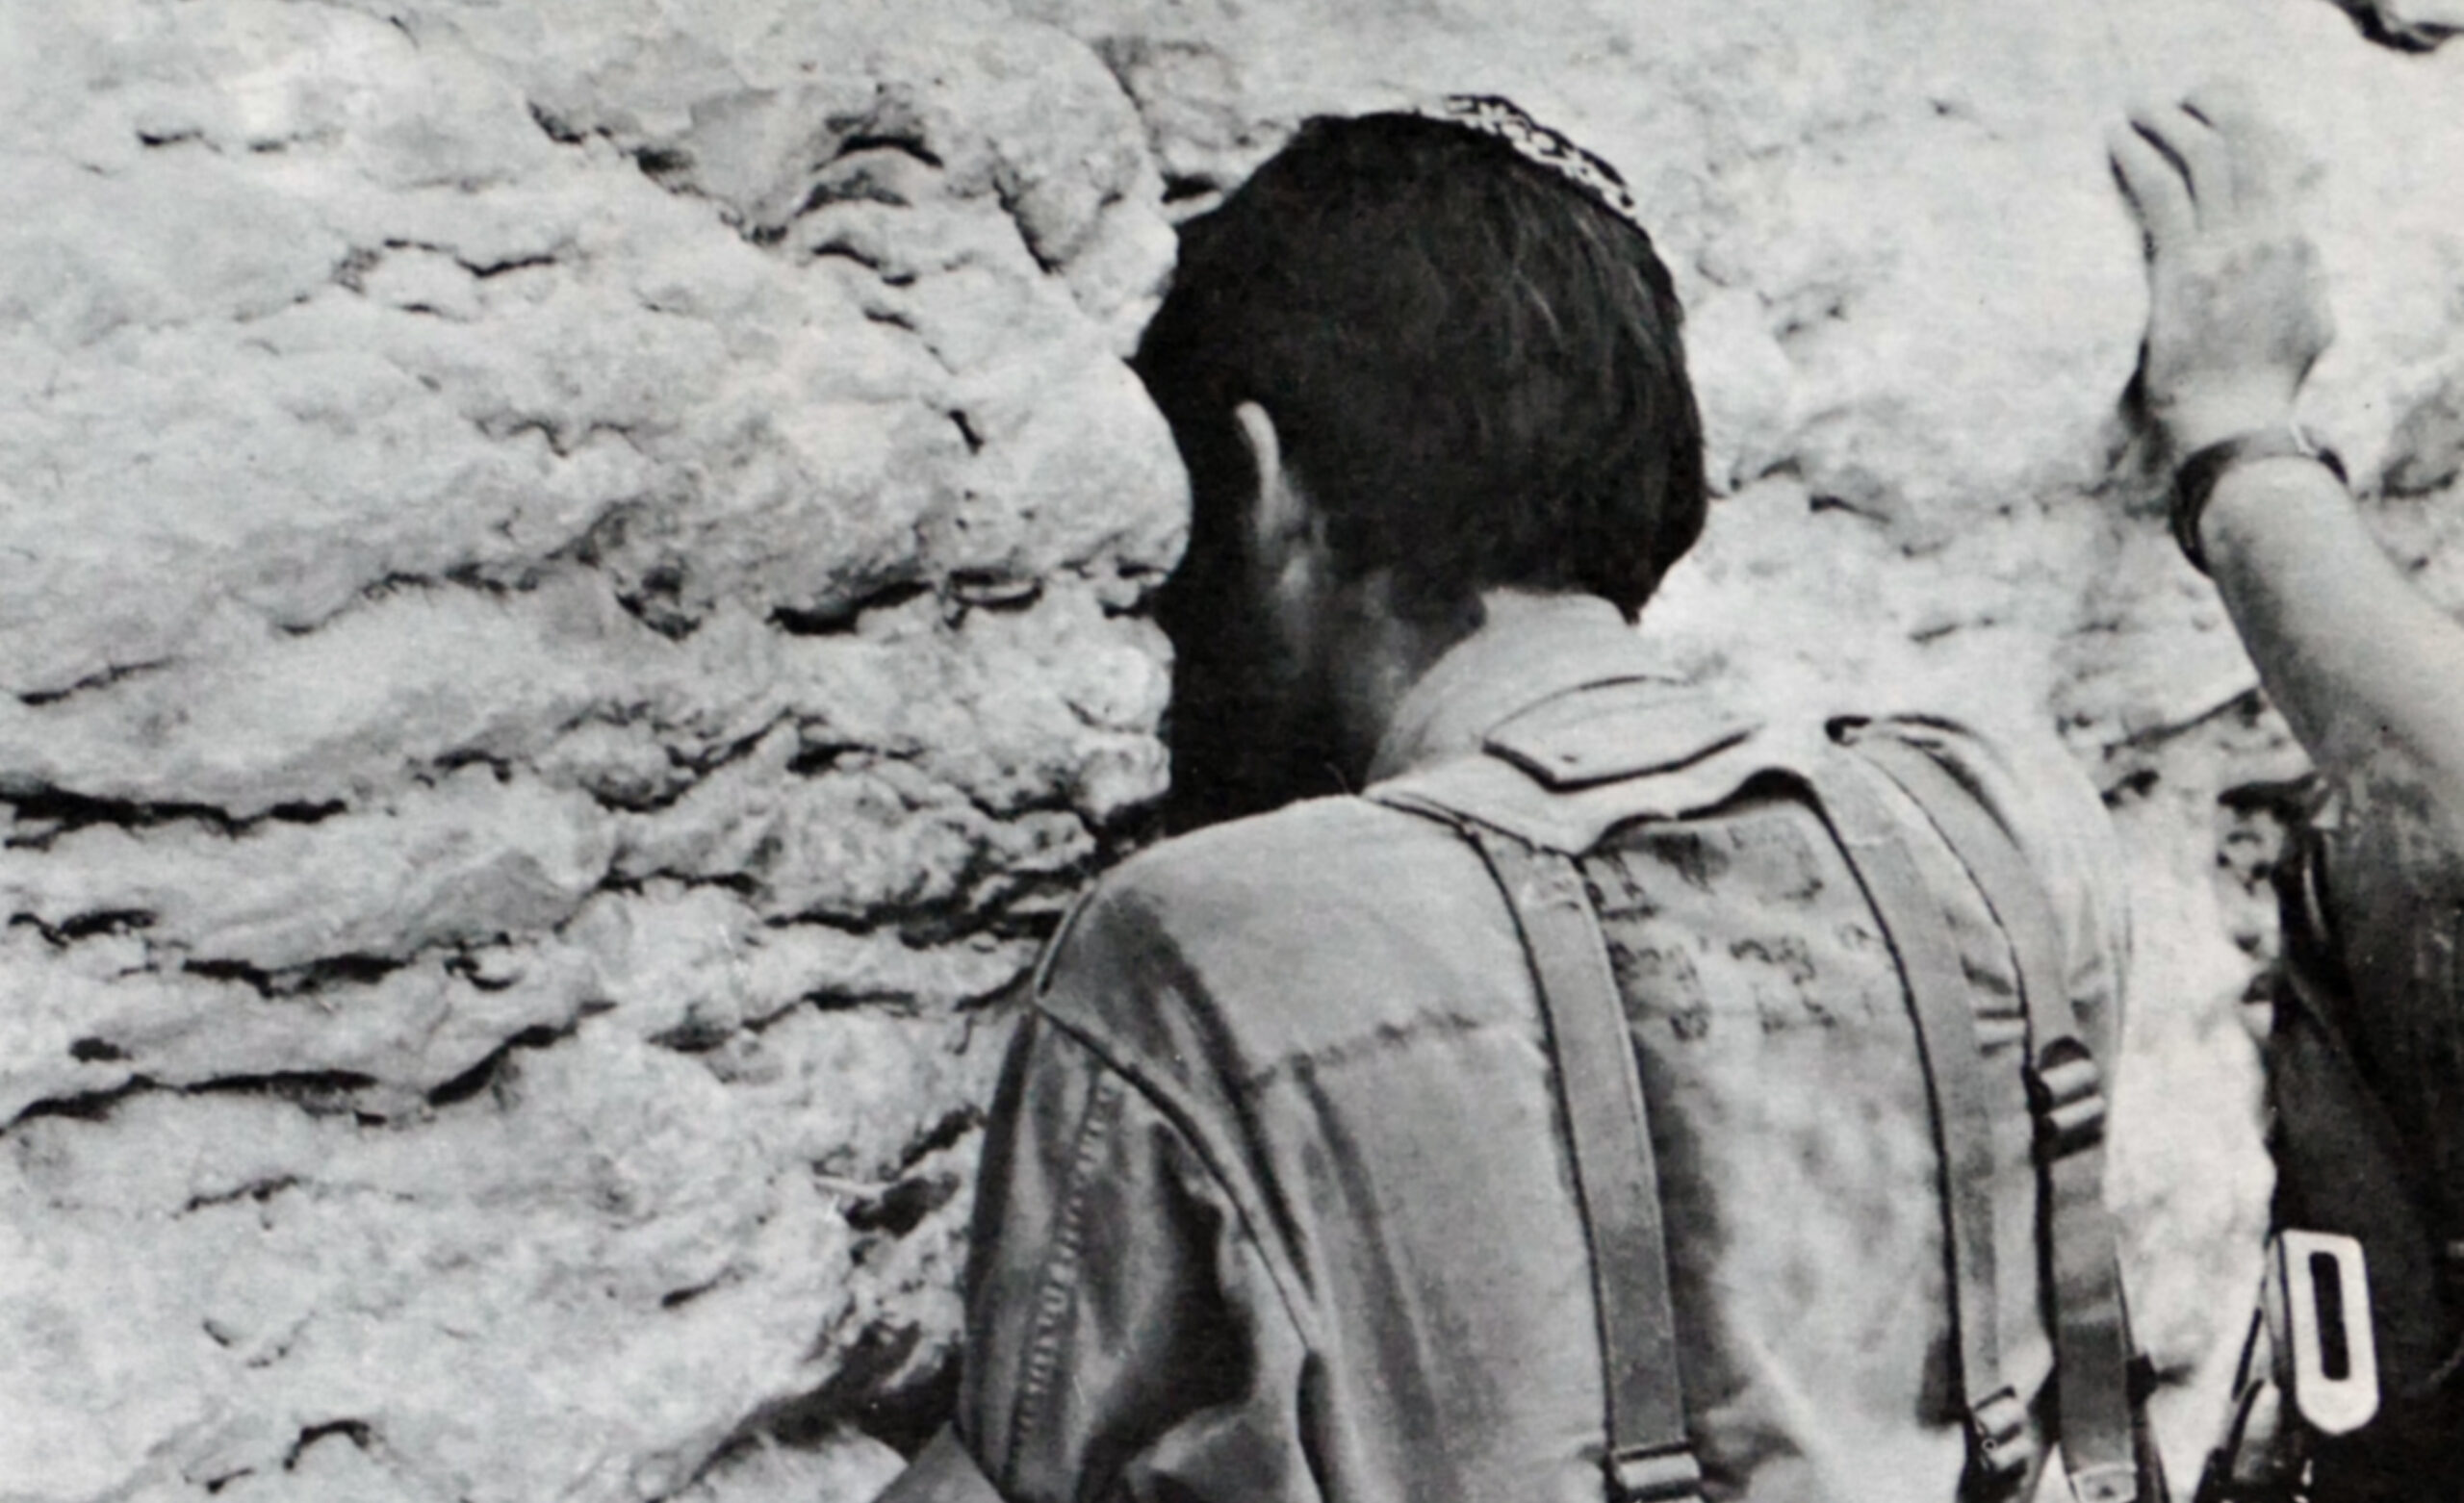 An Israeli soldier praying at the Western Wall during the Six-Day War in 1967. Universal History Archive/Universal Images Group via Getty Images.